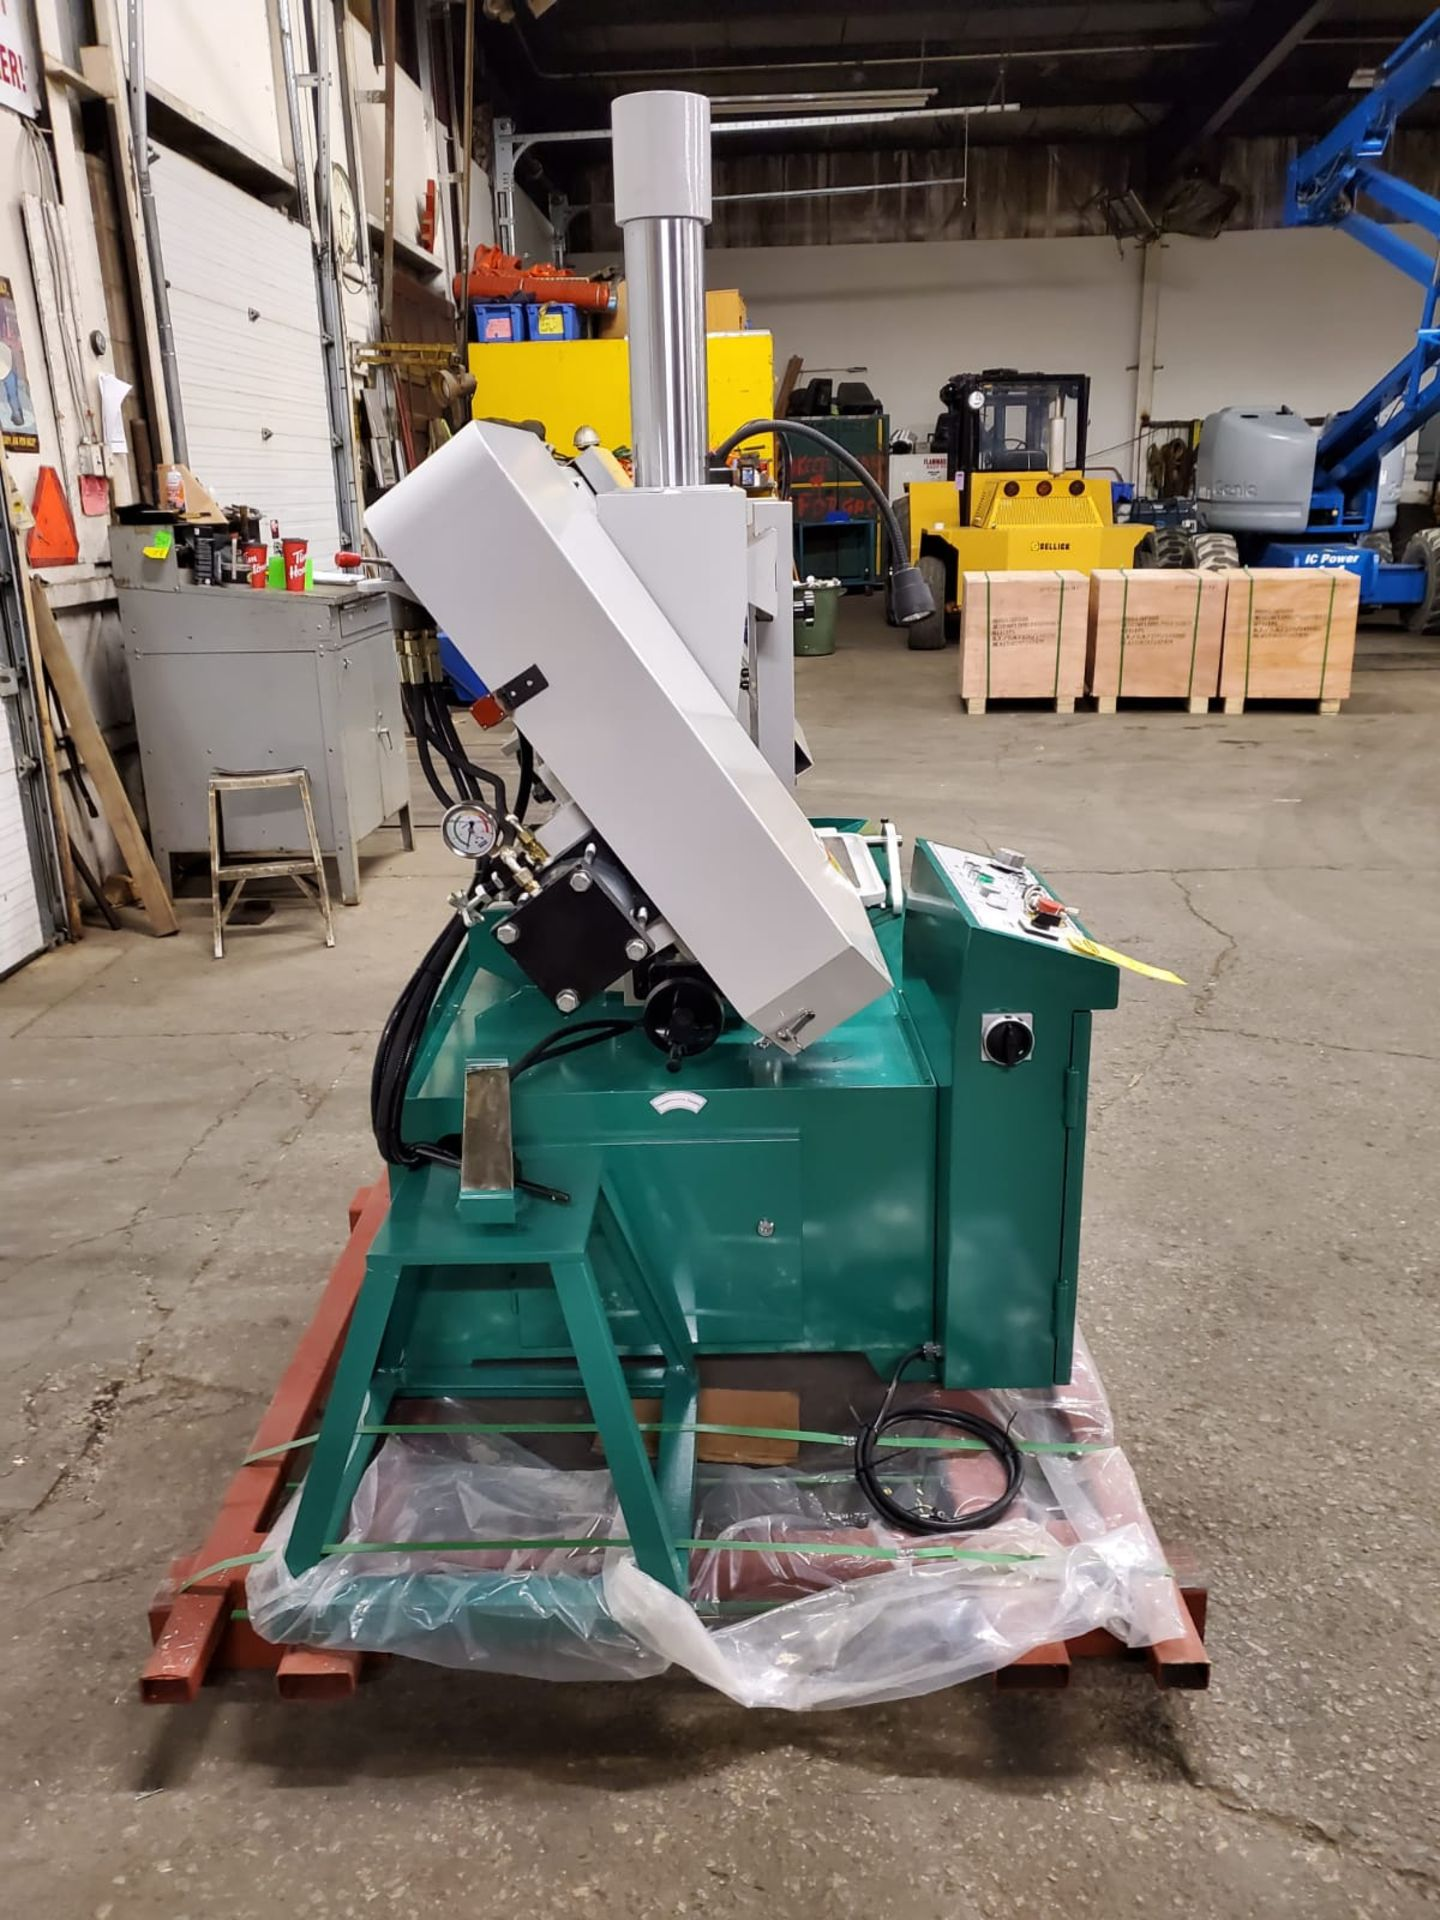 Magnum BS-1616A Horizontal Band Saw - 16 X 16 inch CUTTING CAPACITY - MINT & UNUSED 220V - Image 2 of 4